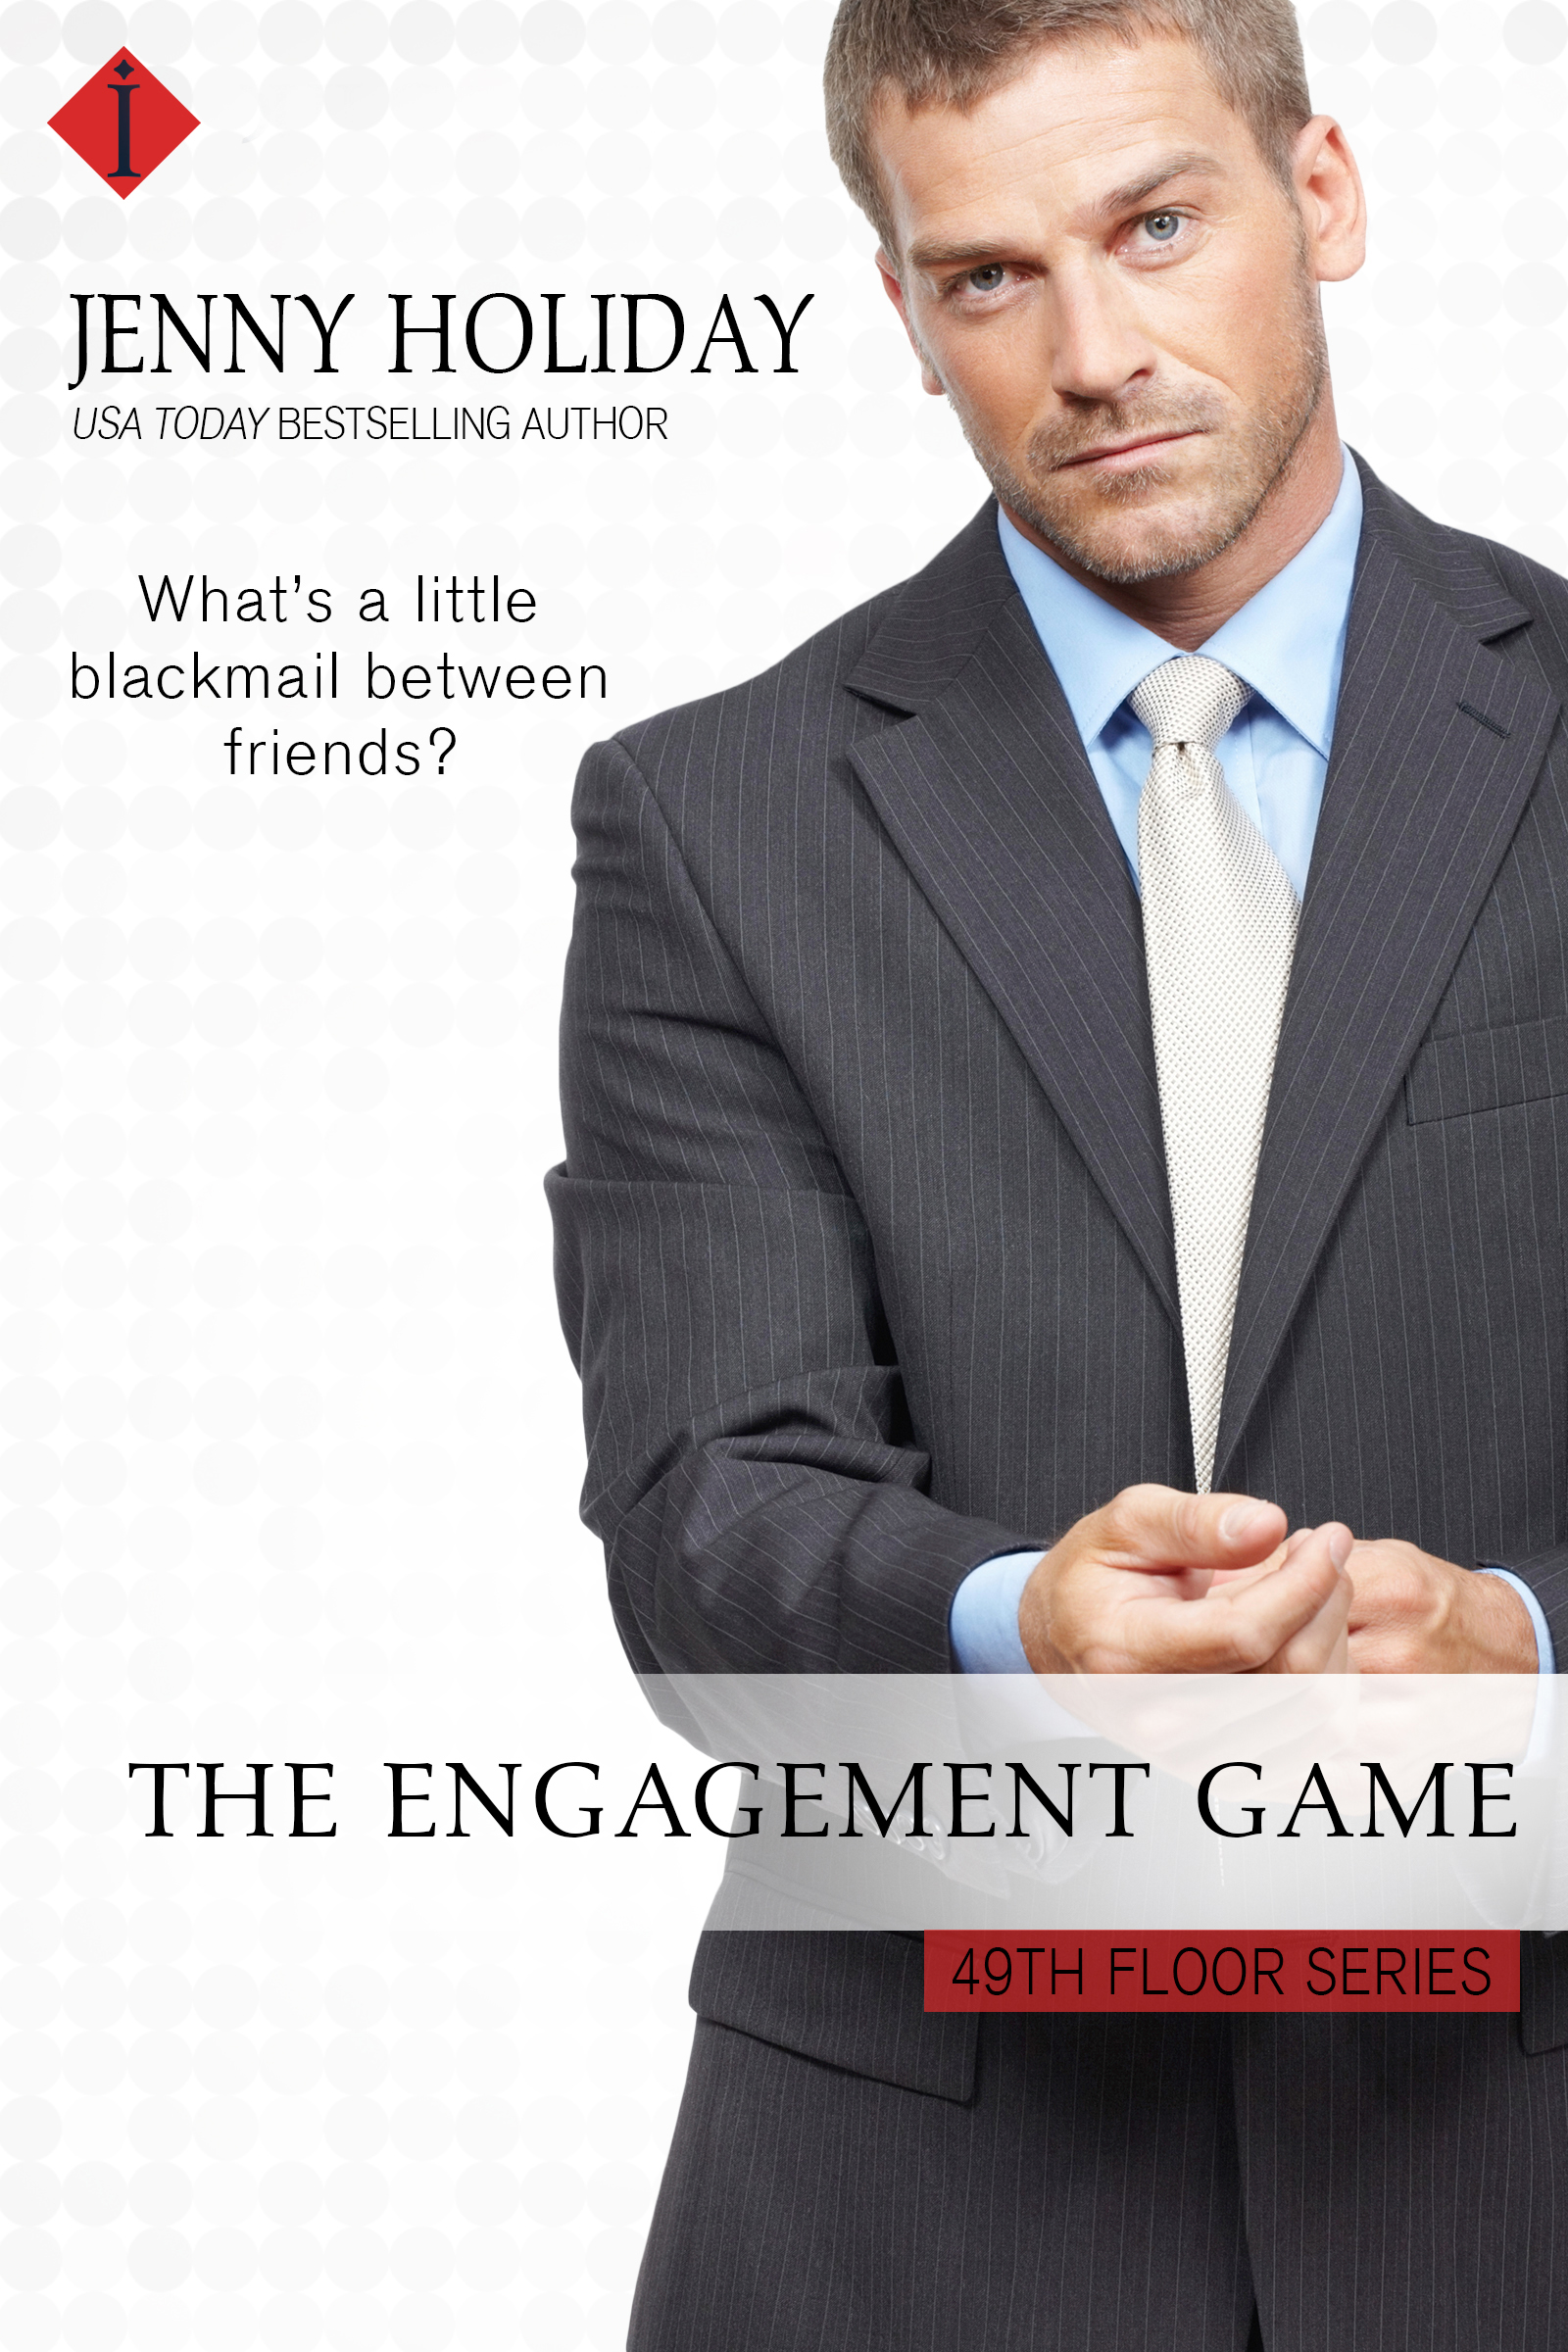 The Engagement Game